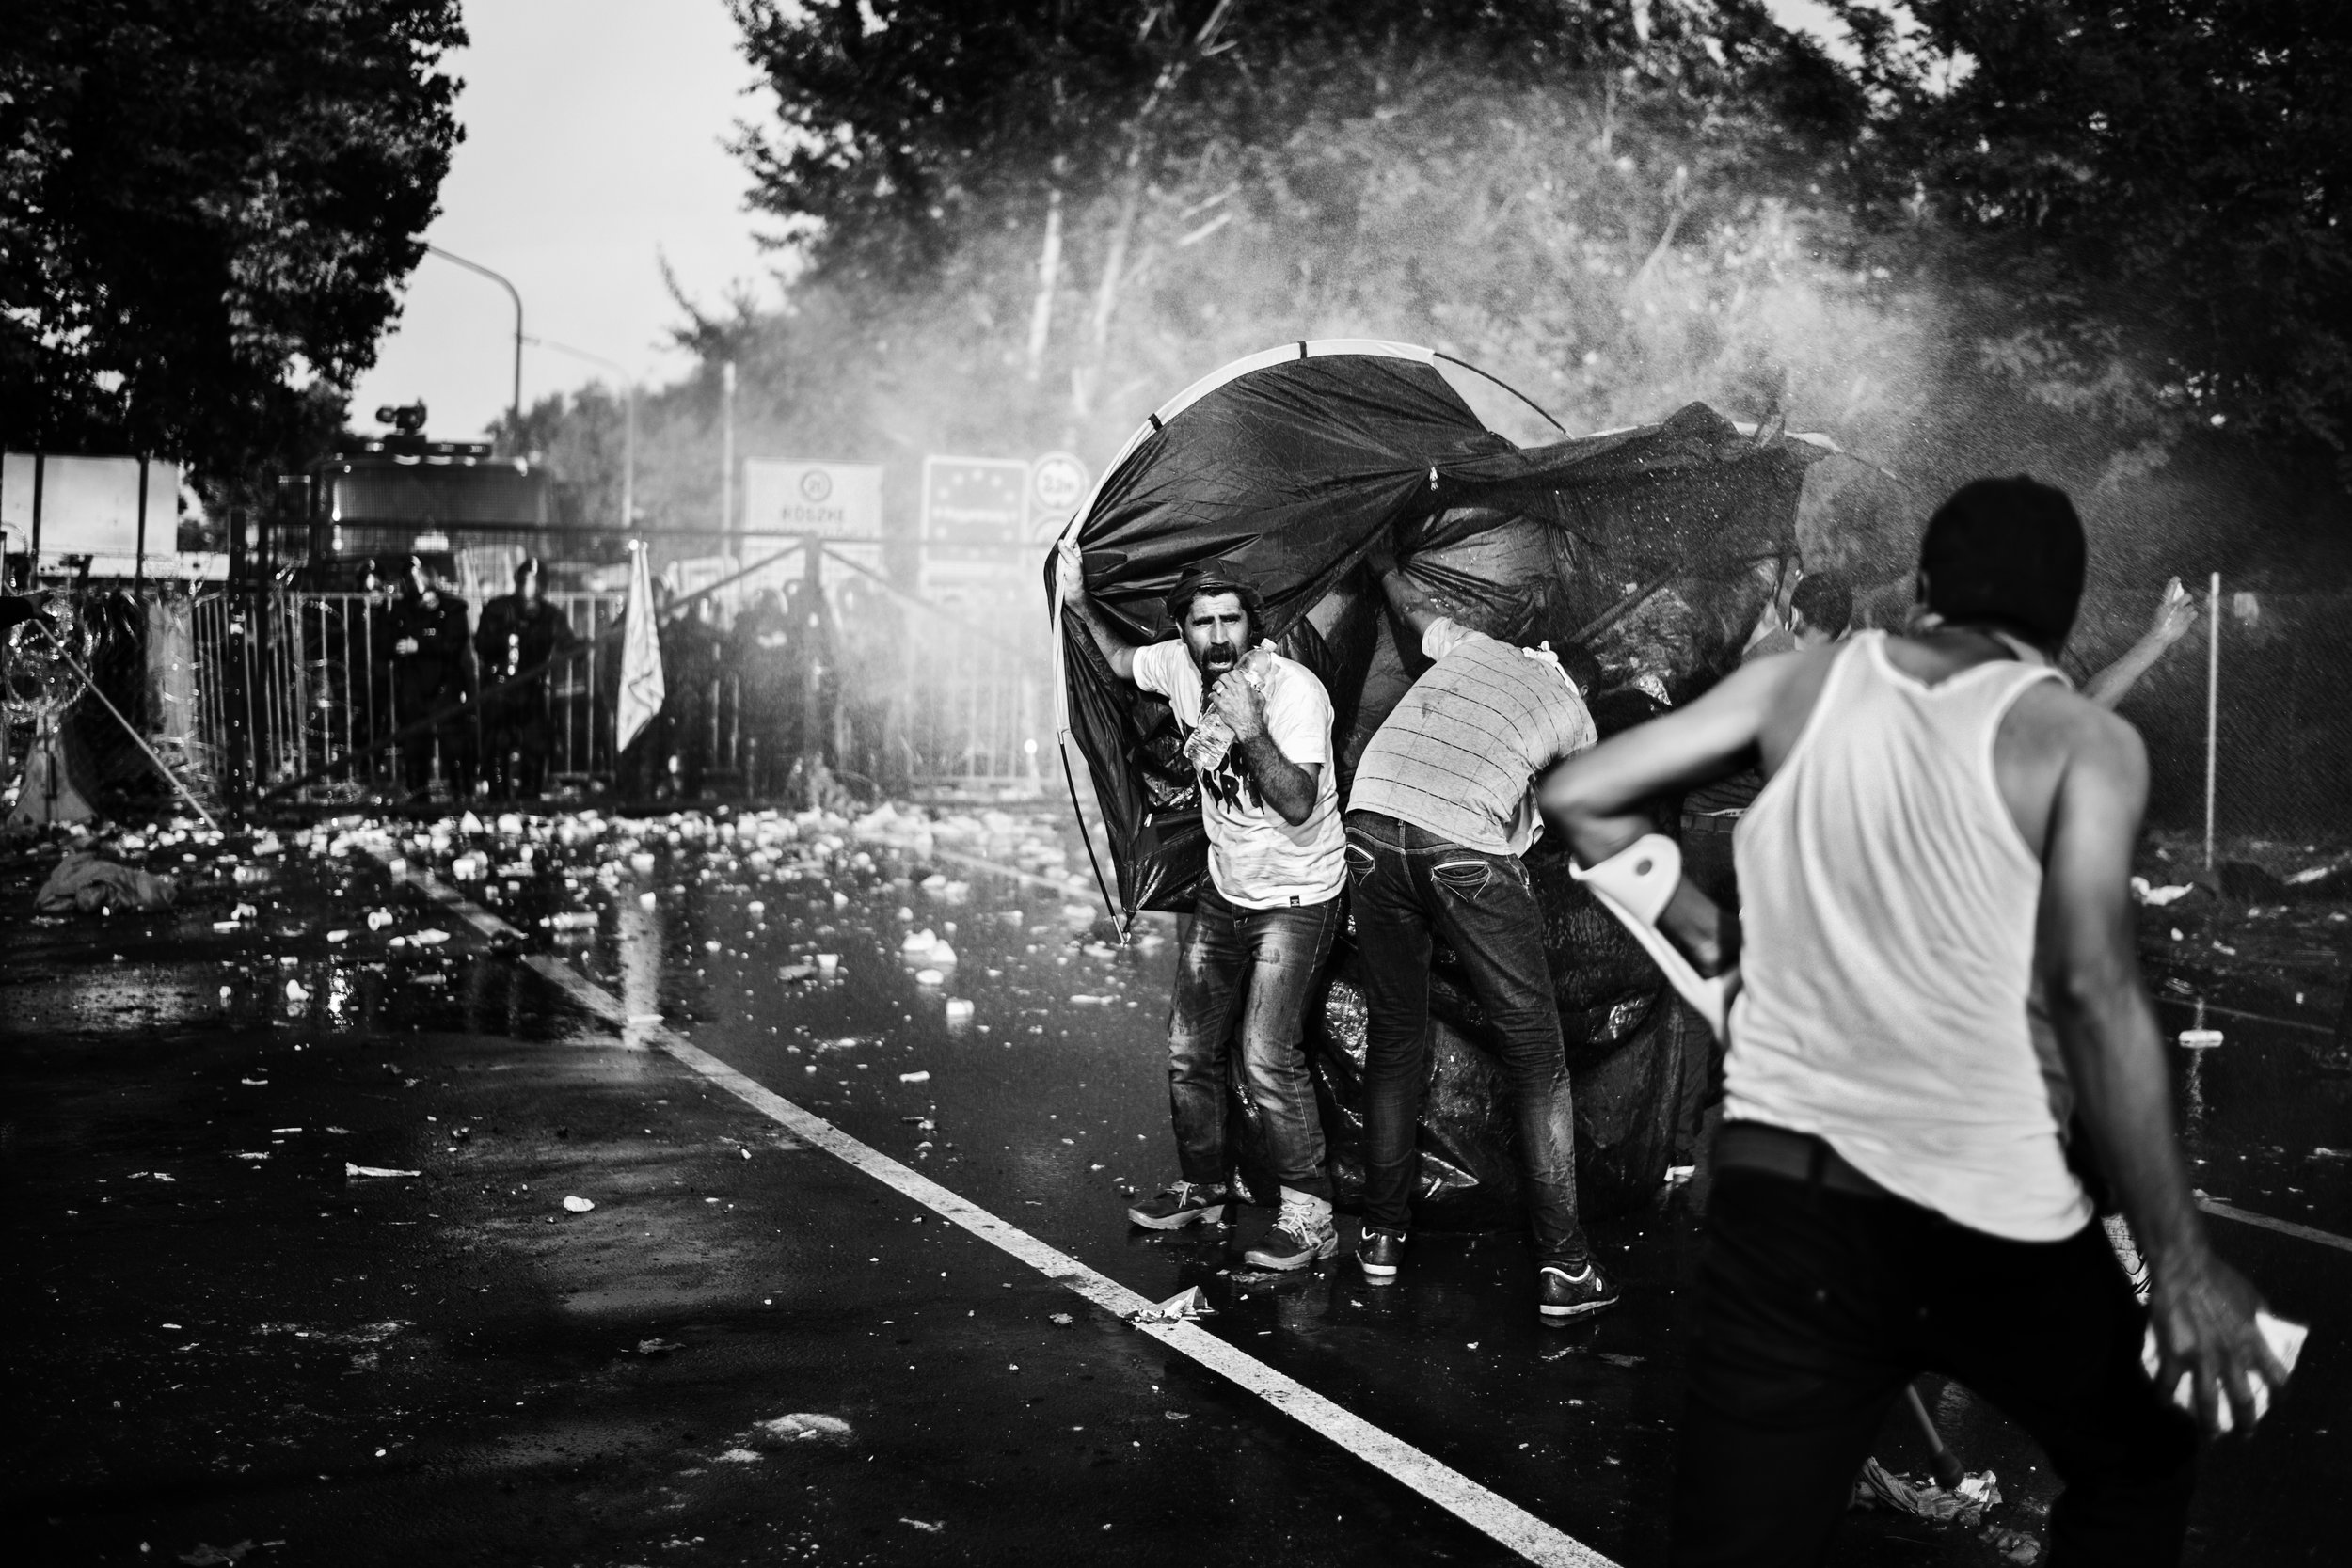 A group of refugees on the closed border-crossing between Serbia and Hungary uses a tent as their shield against the water canon and teargas canisters coming at them from the Hungarian police on September 16th 2015. The atmosphere has been tense for about 36 hours, when riots finally break out between refugees on one side of the border and Hungarian police on the other.